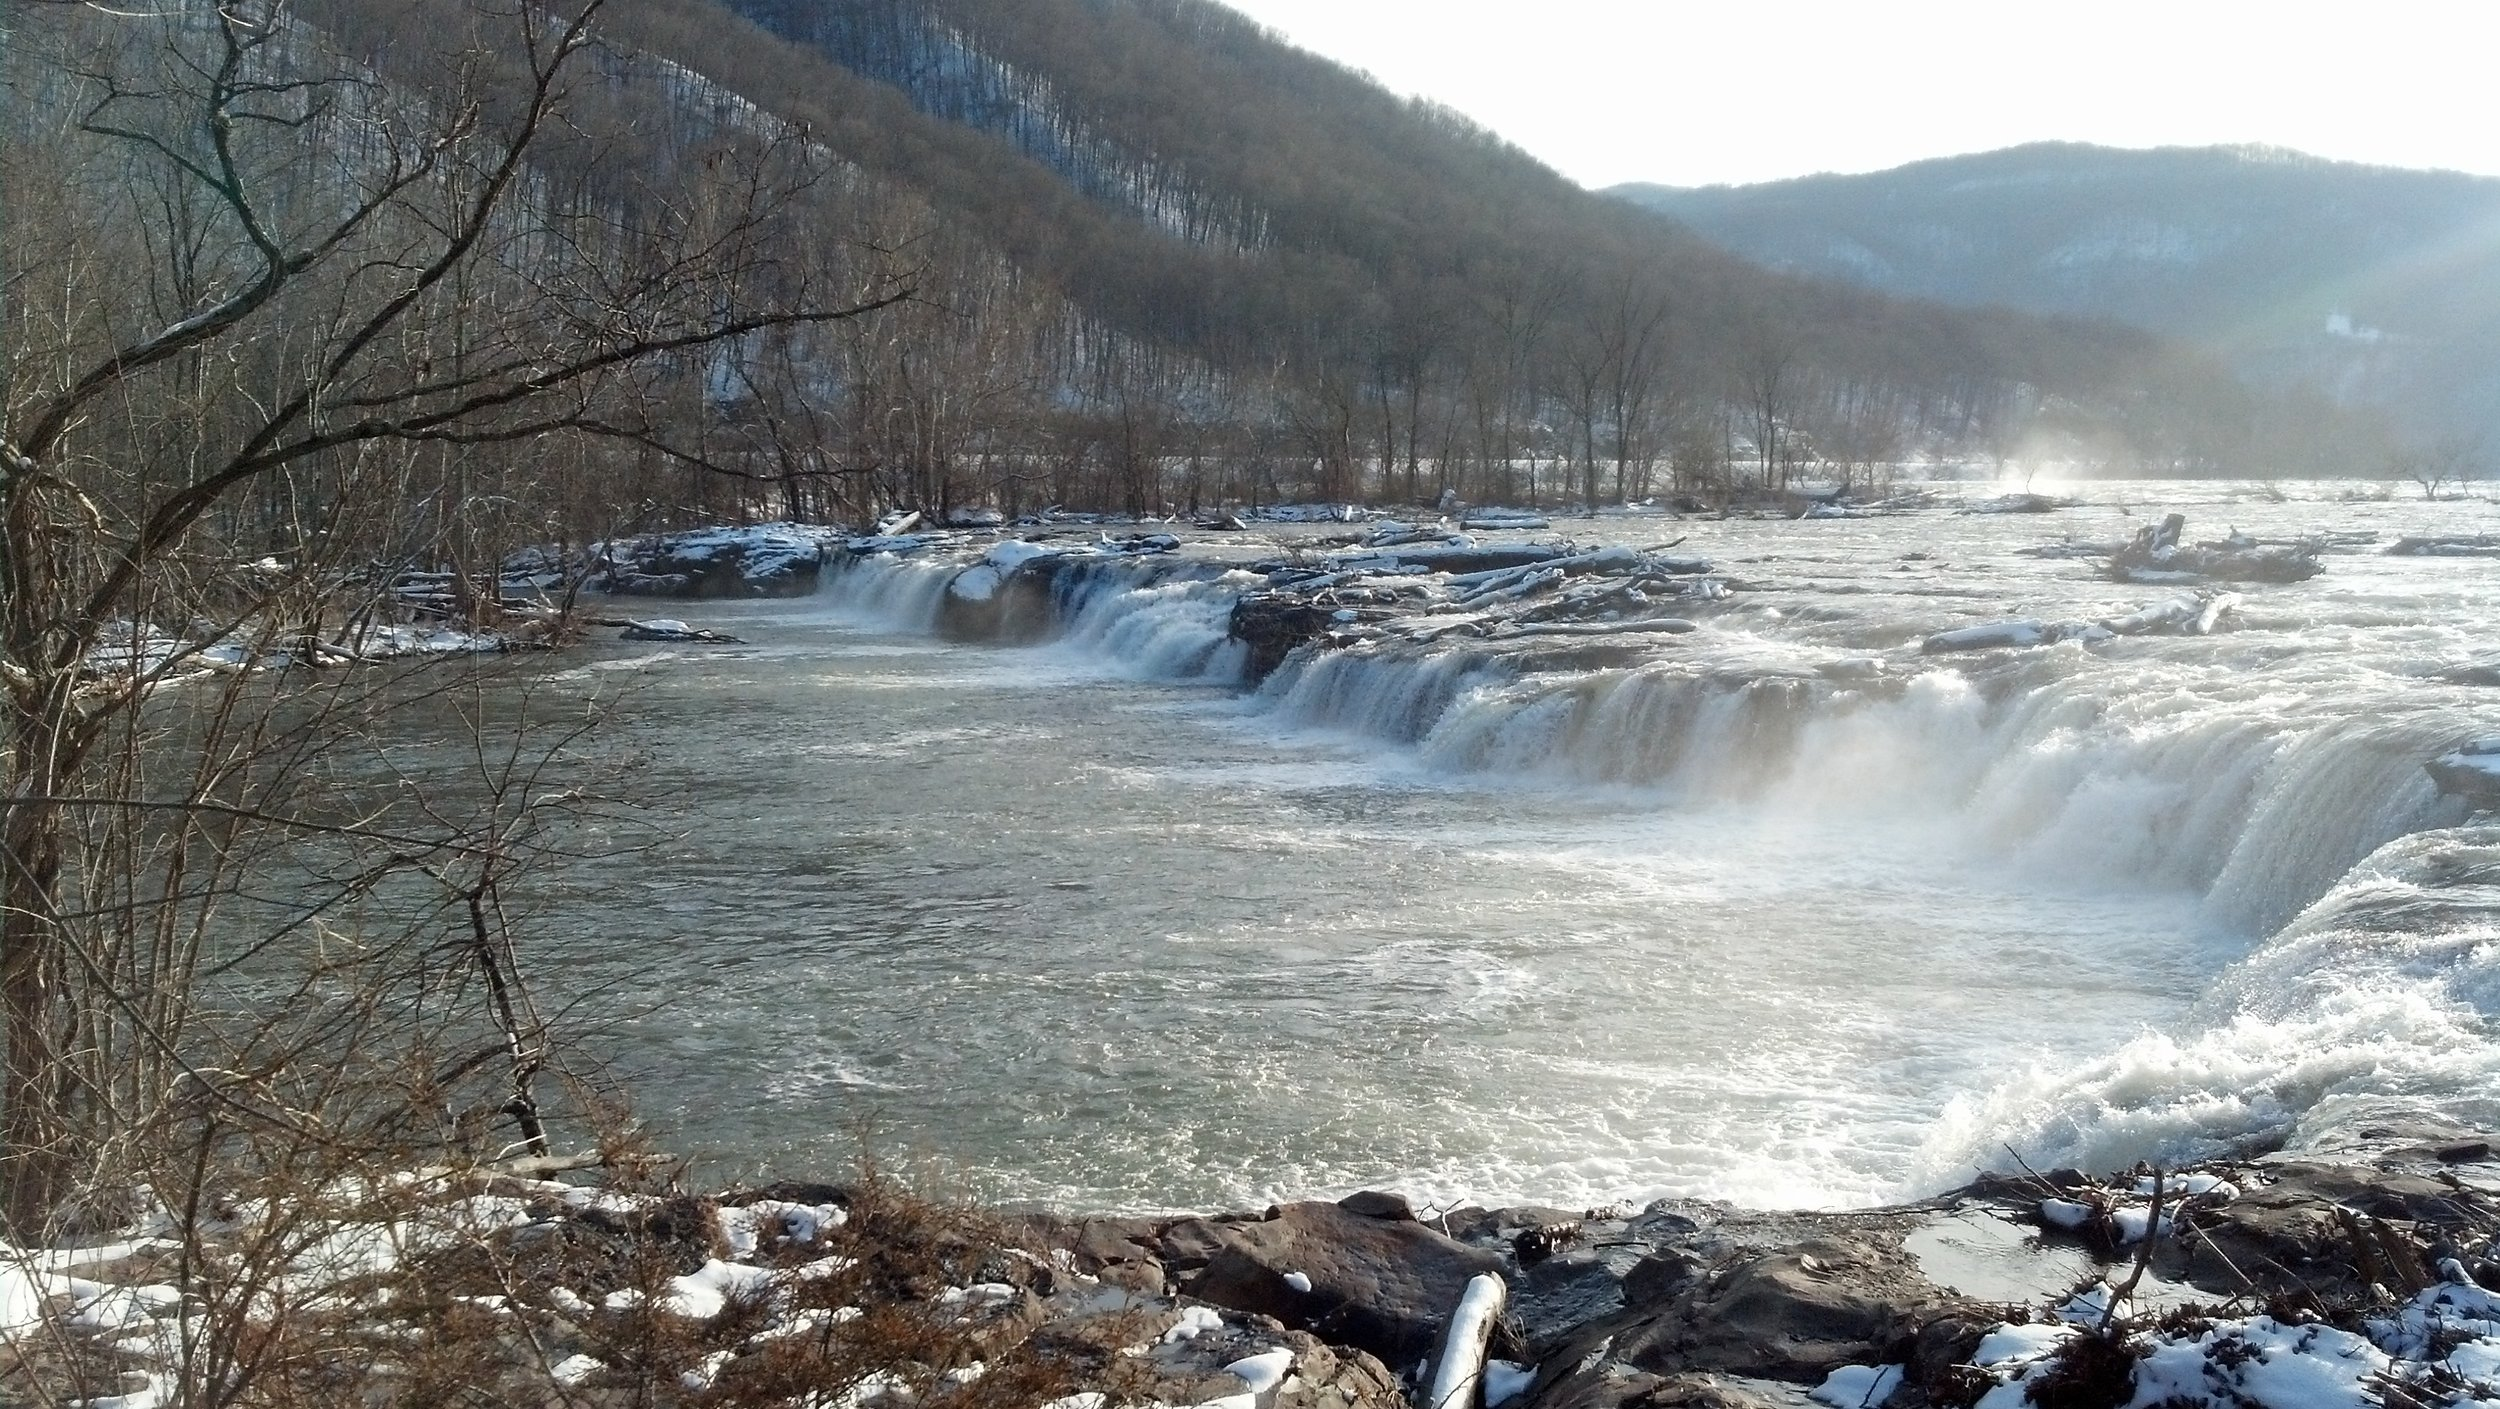 Sandstone Falls, up close and personal